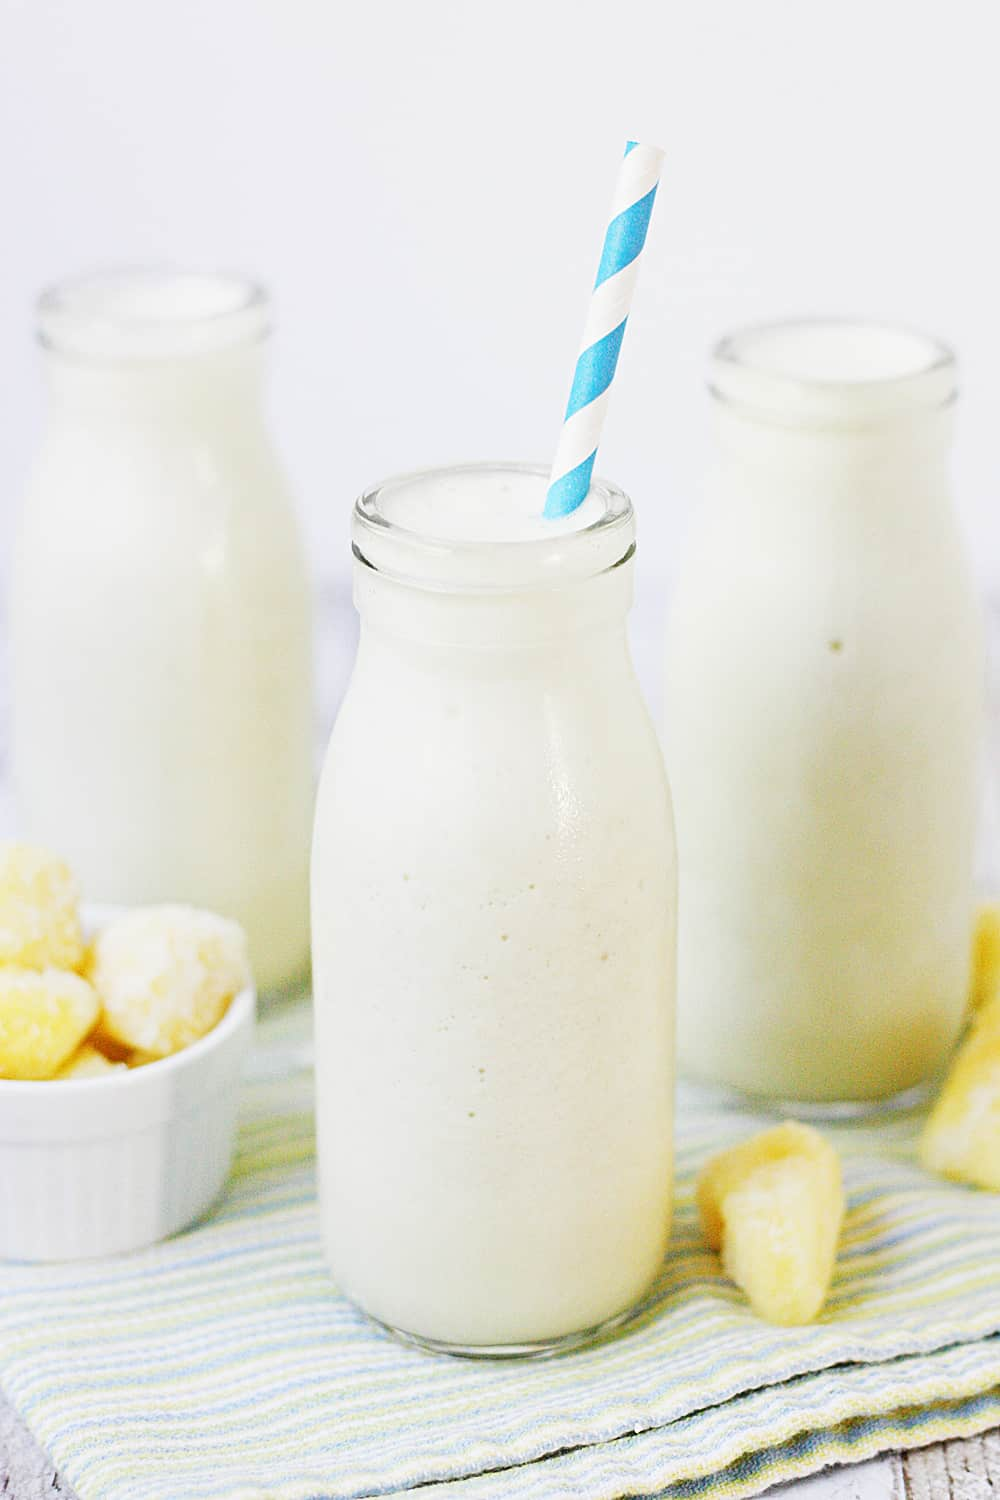 Pina Colada Protein Smoothie - This pina colada protein smoothie is an easy, healthy, delicious, protein-packed way to enjoy your favorite tropical beverage! #halfscratched #pinacolada #smoothie #proteinshake #proteinsmoothie #smoothierecipe #drinkrecipe #drink #healthyrecipe #healthy #pinacoladashake